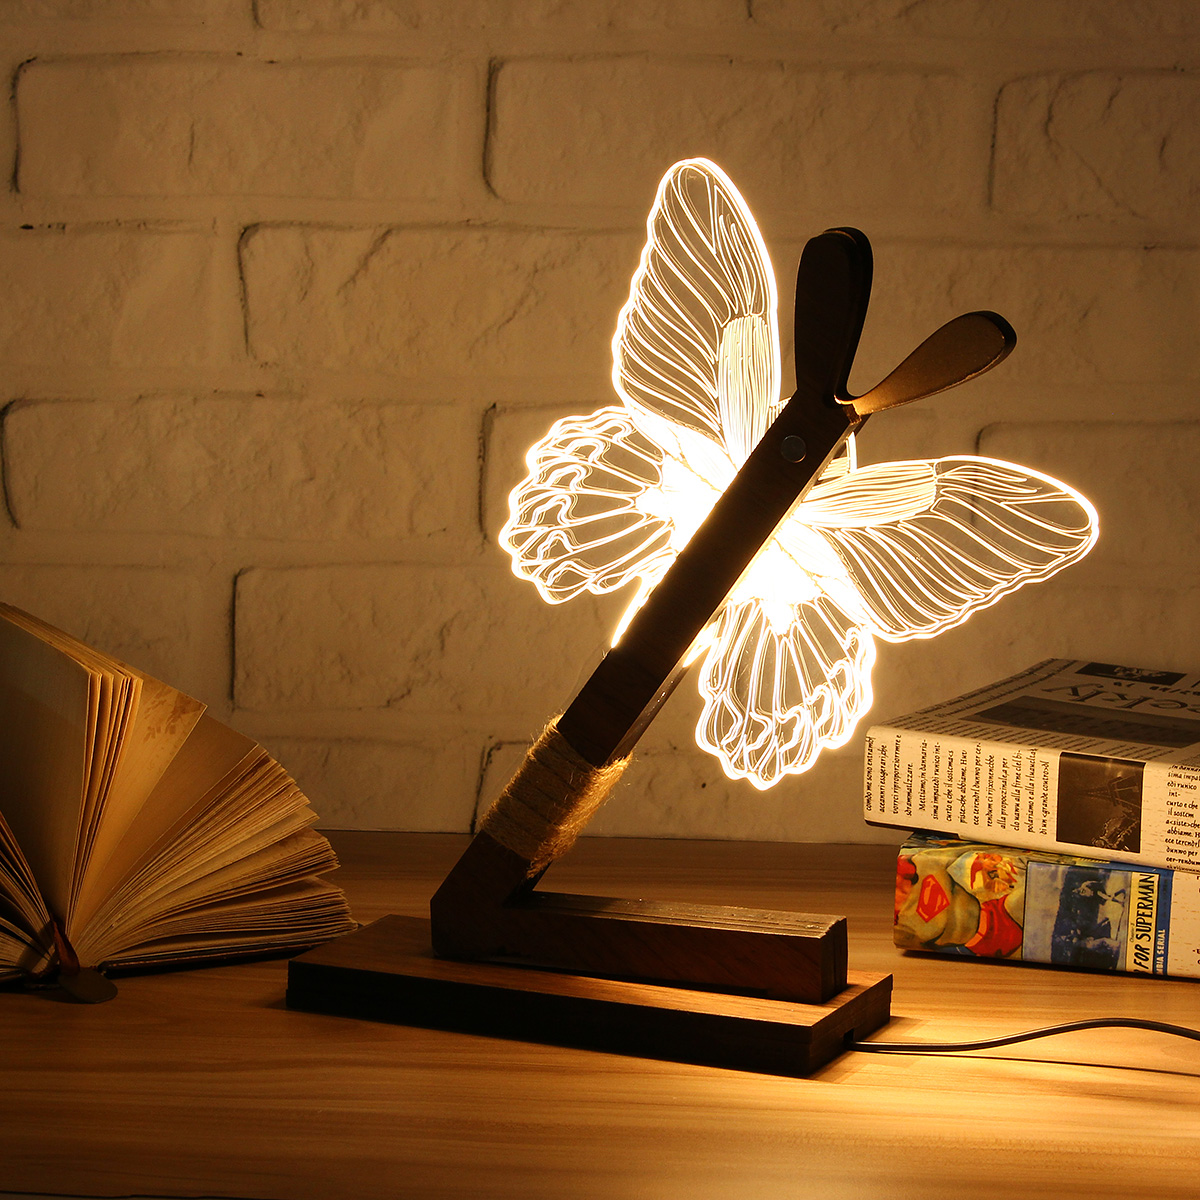 DC5V USB 3D LED Animal Butterfly OWL Night Light Warm Lighting Table Reading Lamps Bedroom Living Room Home Decor thrisdar dimmable 3d acrylic led night light 3d owl butterfly bedroom bedside retro wooden table lamps christmas birthday gift